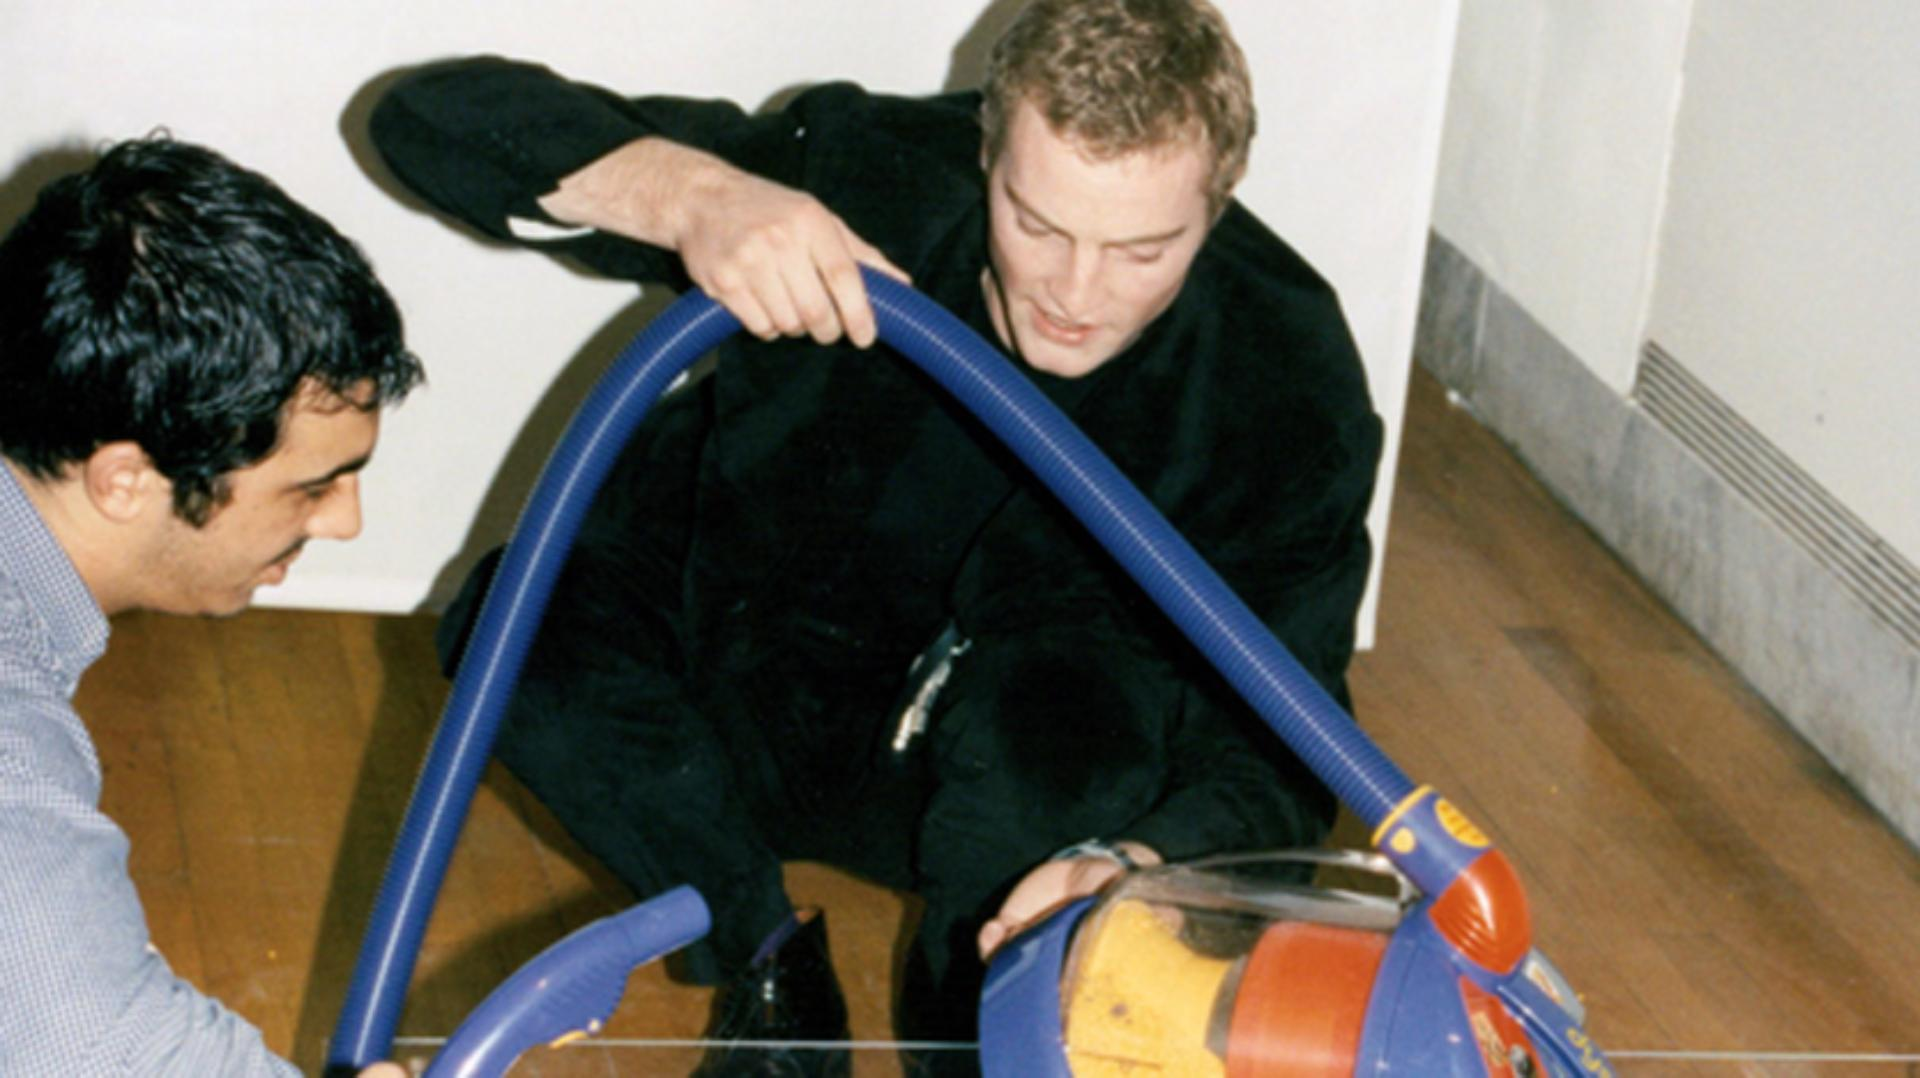 Jake Dyson crouched demonstrating a colourful DC02 vacuum at the Design Museum